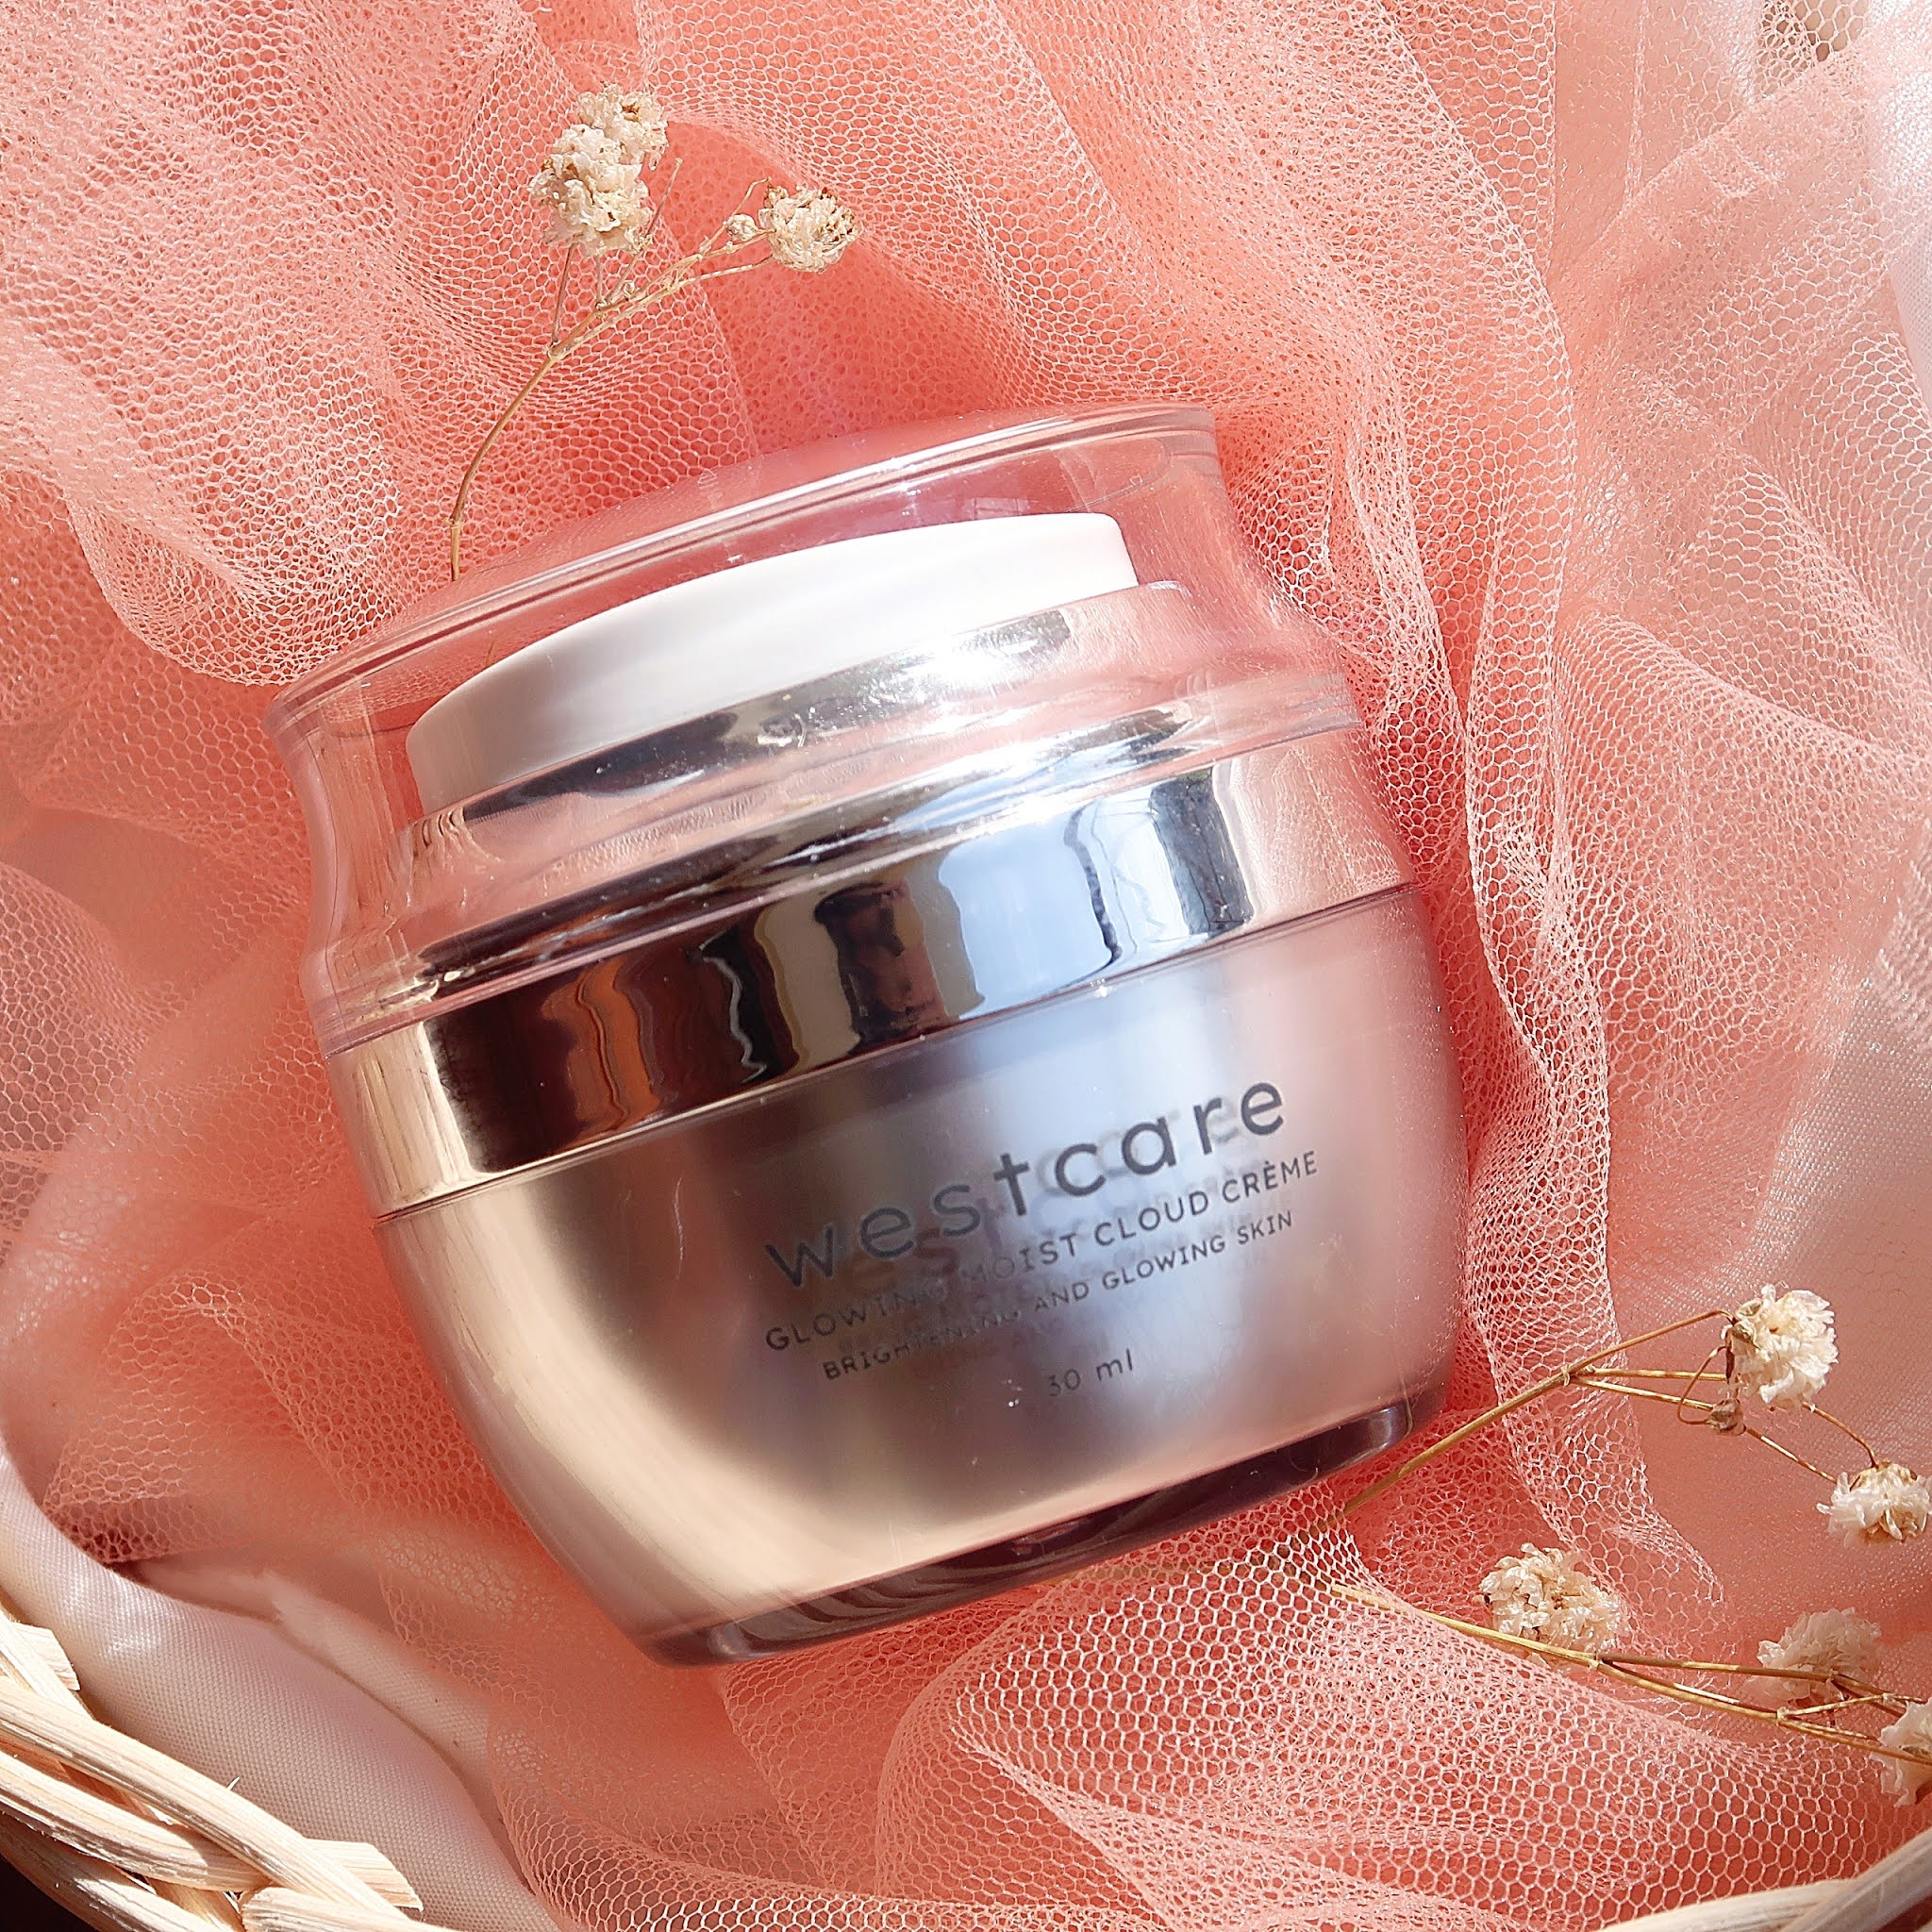 Review Westcare Glowing Moist Cloud Creme